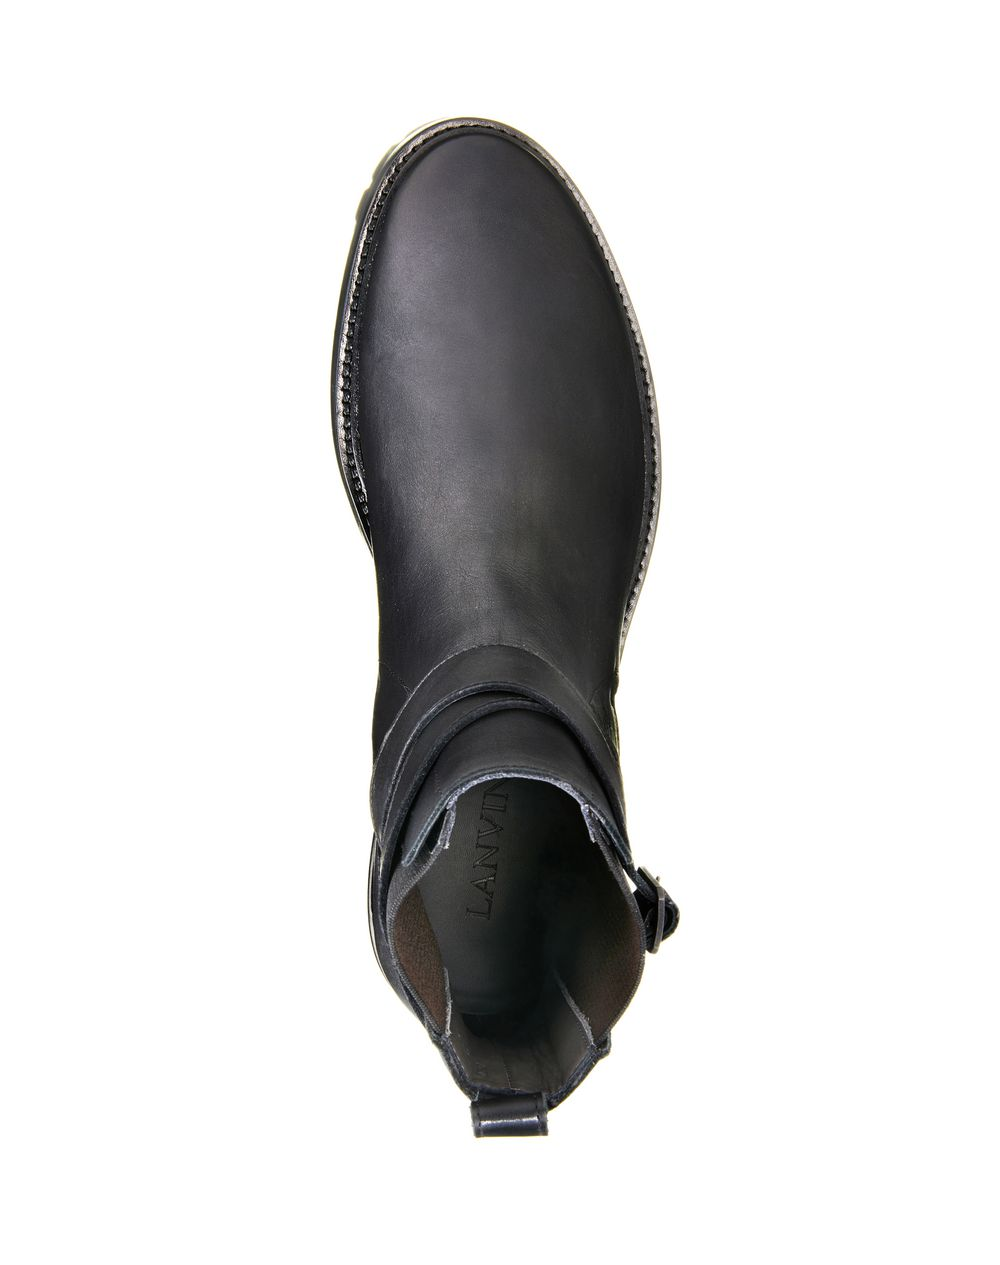 SMOOTH CALFSKIN CHELSEA BOOT - Lanvin